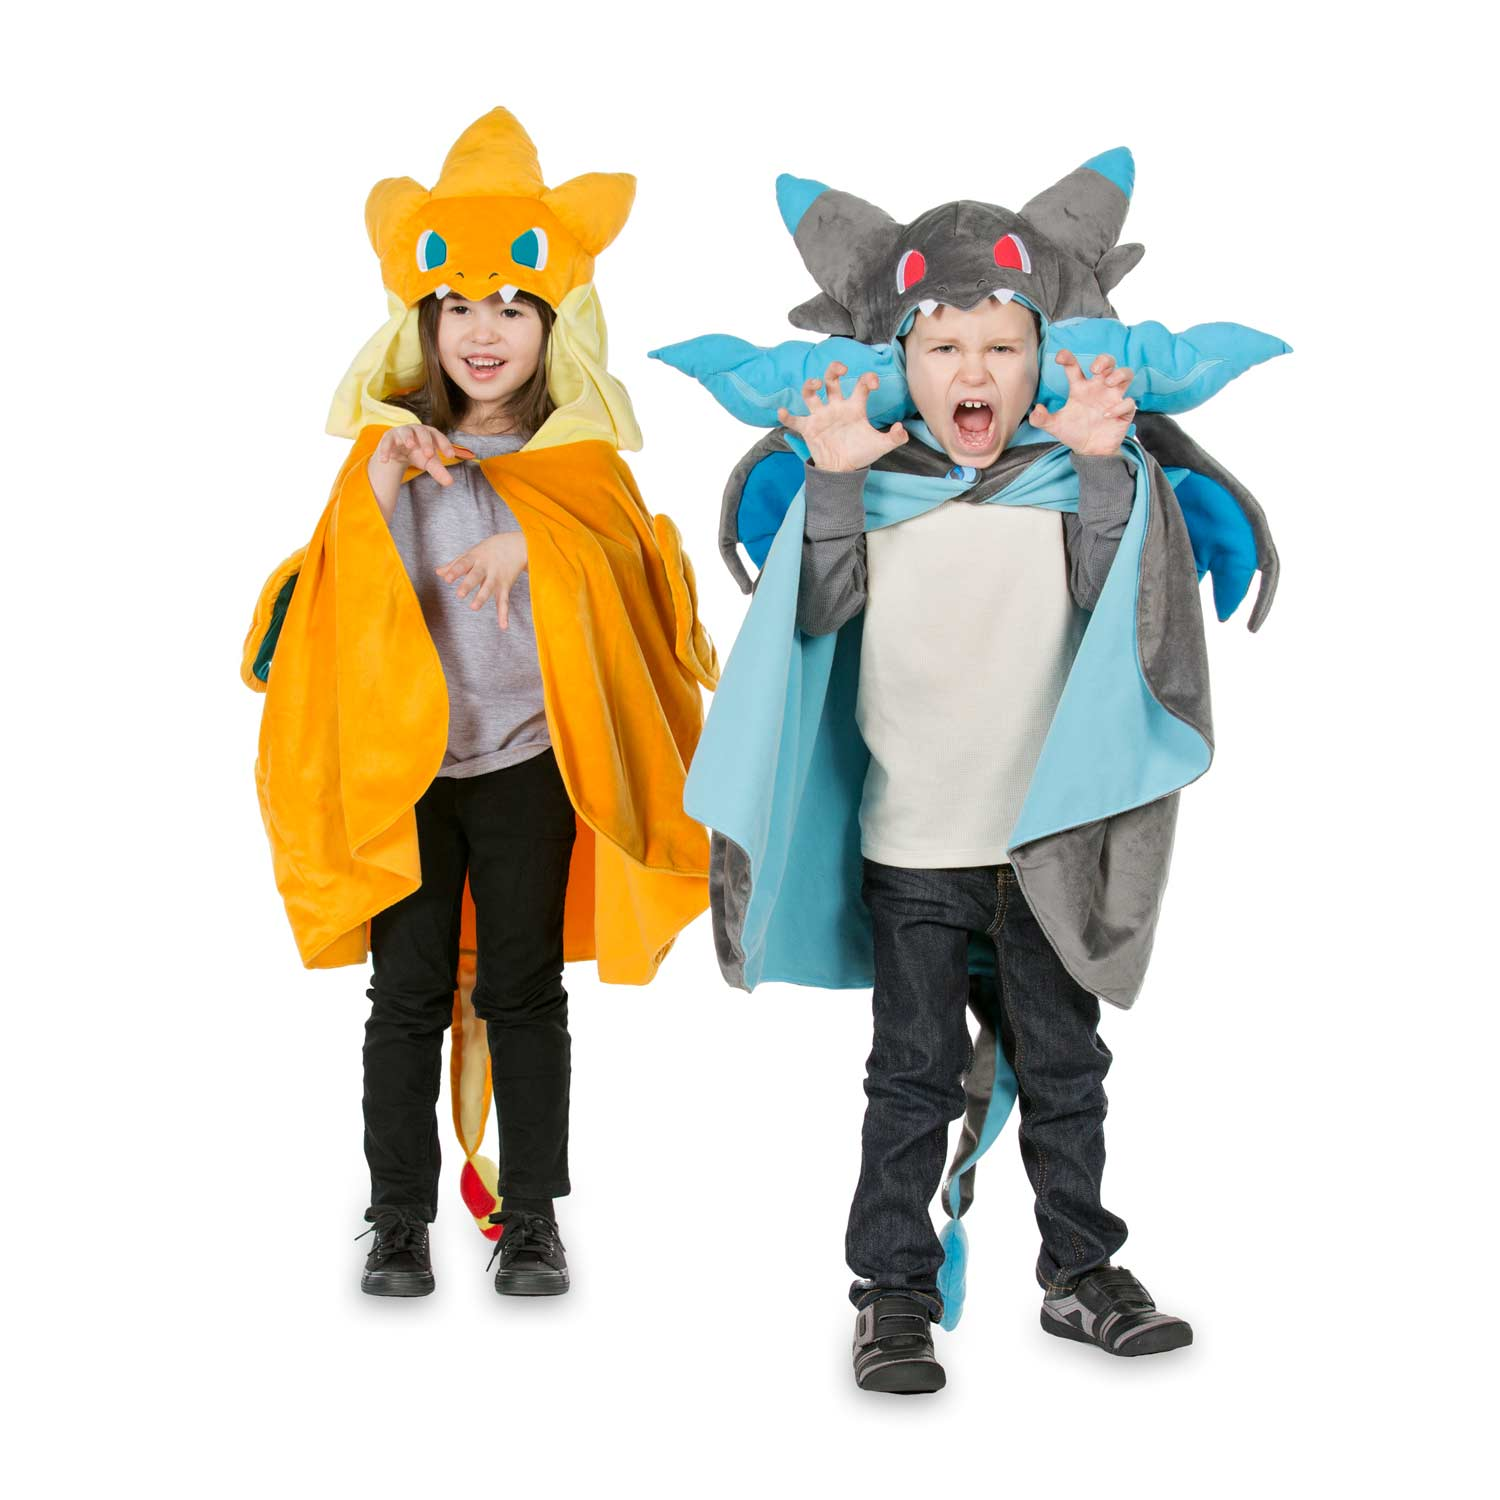 ... Image for Mega Charizard X Plush Costume from Pokemon Center. _5_3074457345618259663_3074457345618262055_3074457345618268804  sc 1 st  Pokemon Center & Mega Charizard X Cape | Blue Pokémon Cape | Pokémon Center Original